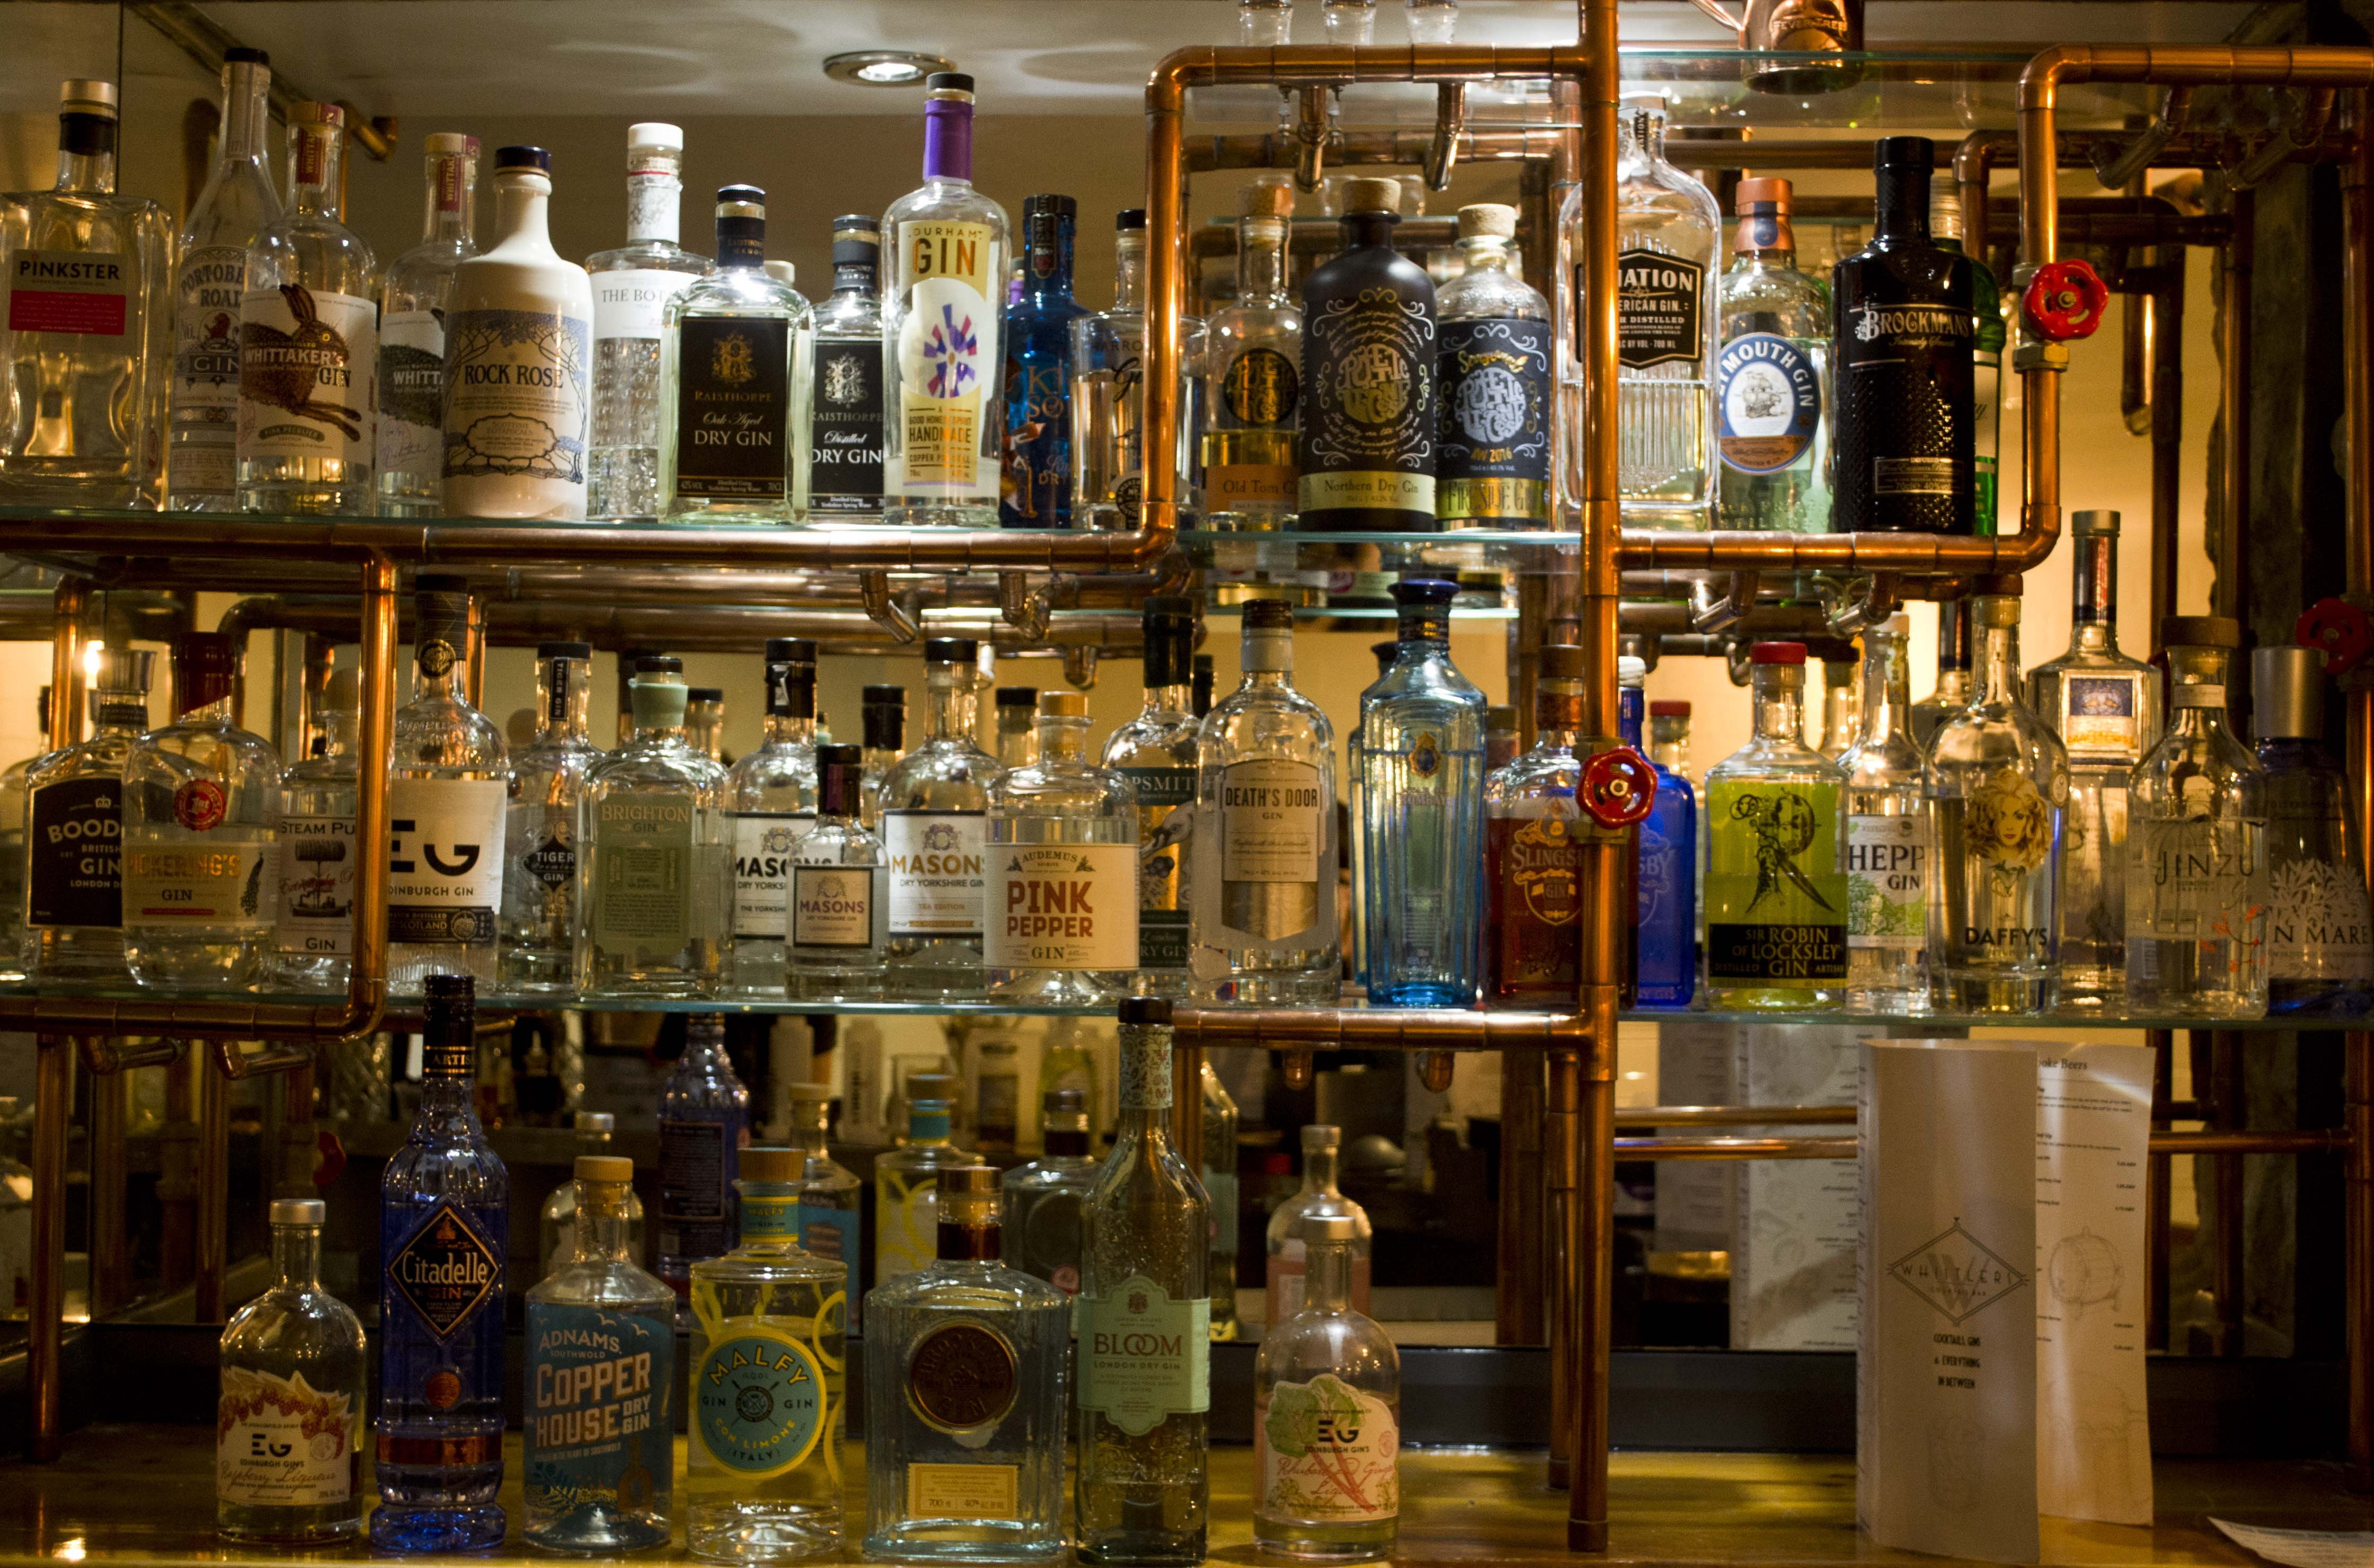 Whistlers Gins